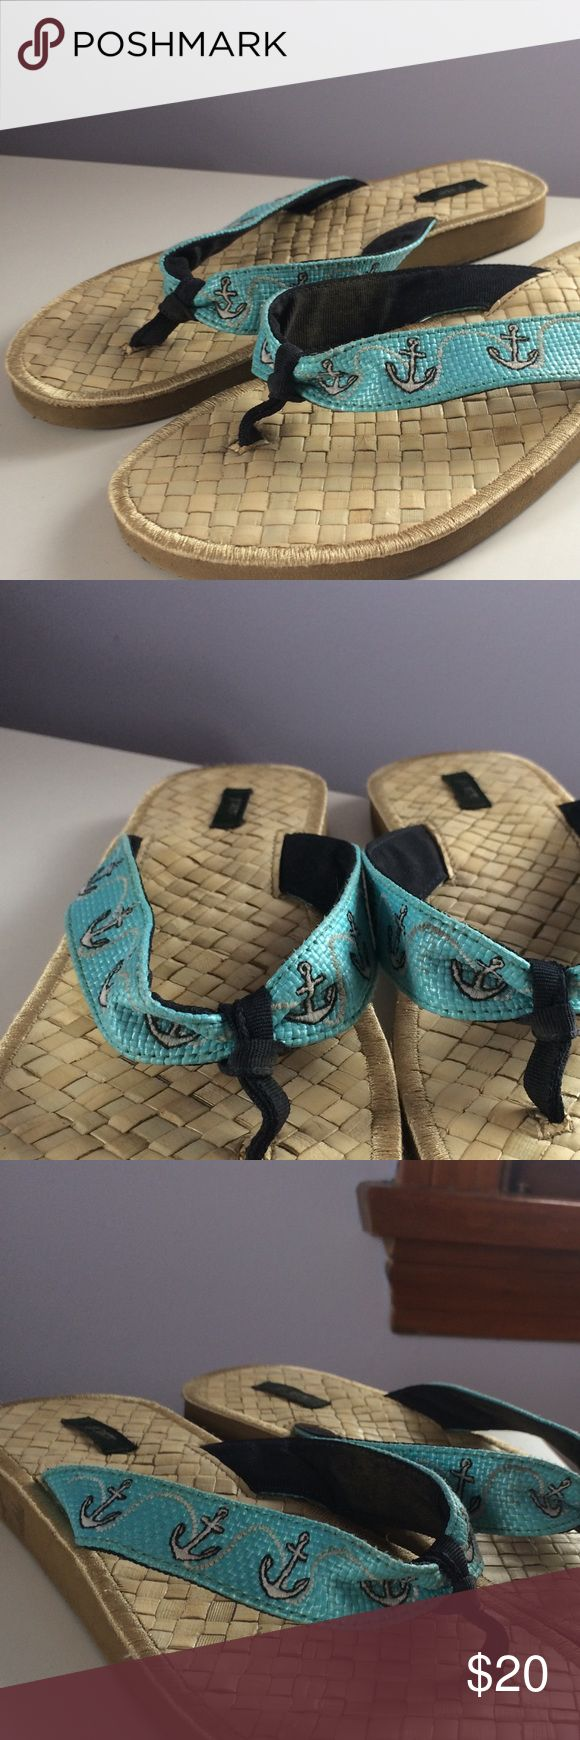 J.Crew anchor sandals Only been worn once, in great condition! J.crew size 7-7.5 sandals. Perfect for summer with anchor details! J. Crew Shoes Sandals